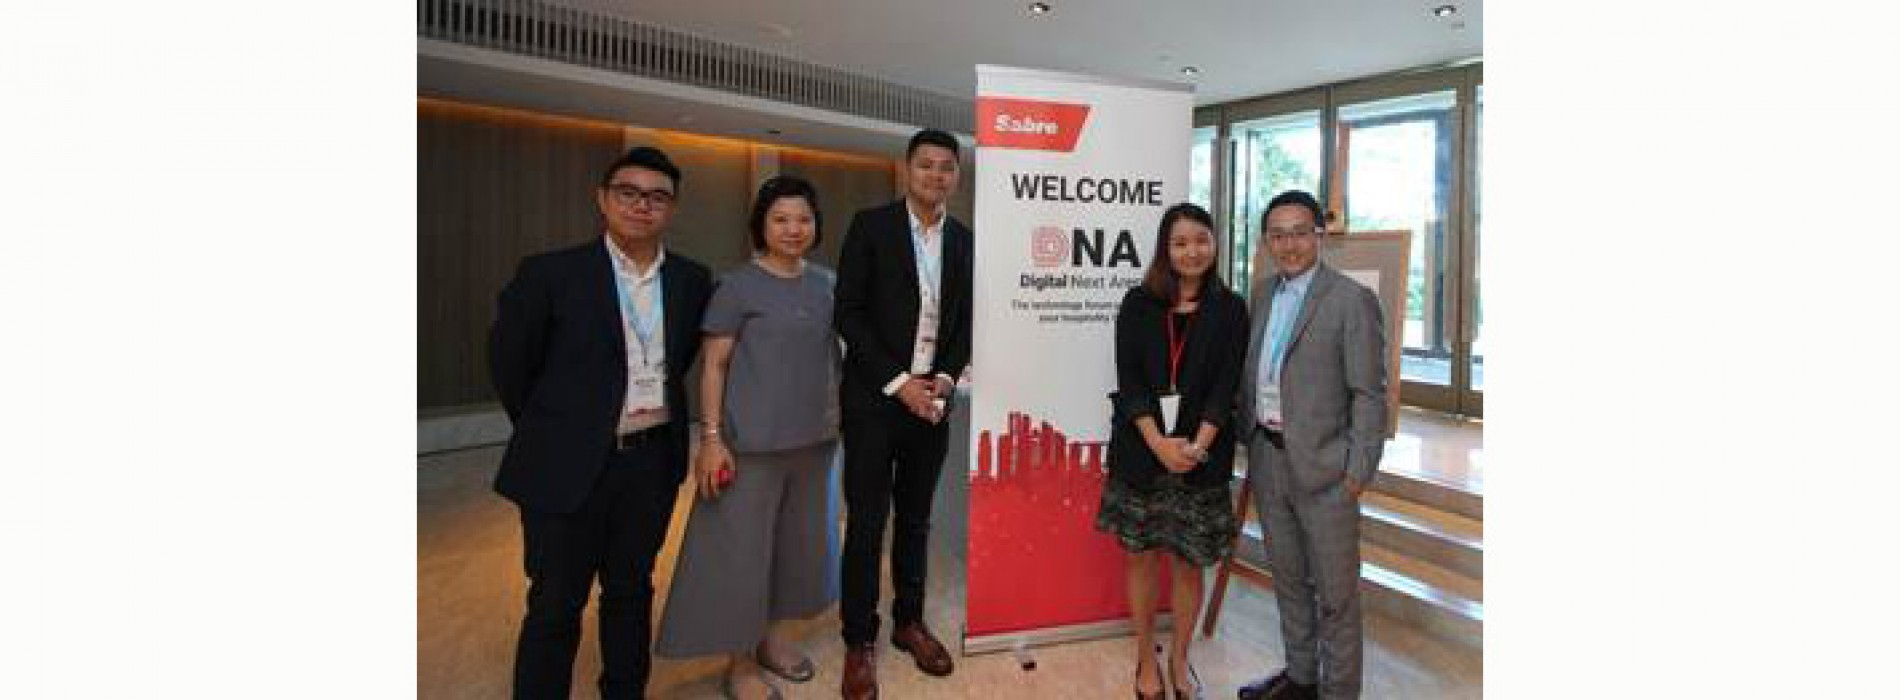 Digital Next Arena empowers hoteliers to transform the guest experience across Asia Pacific